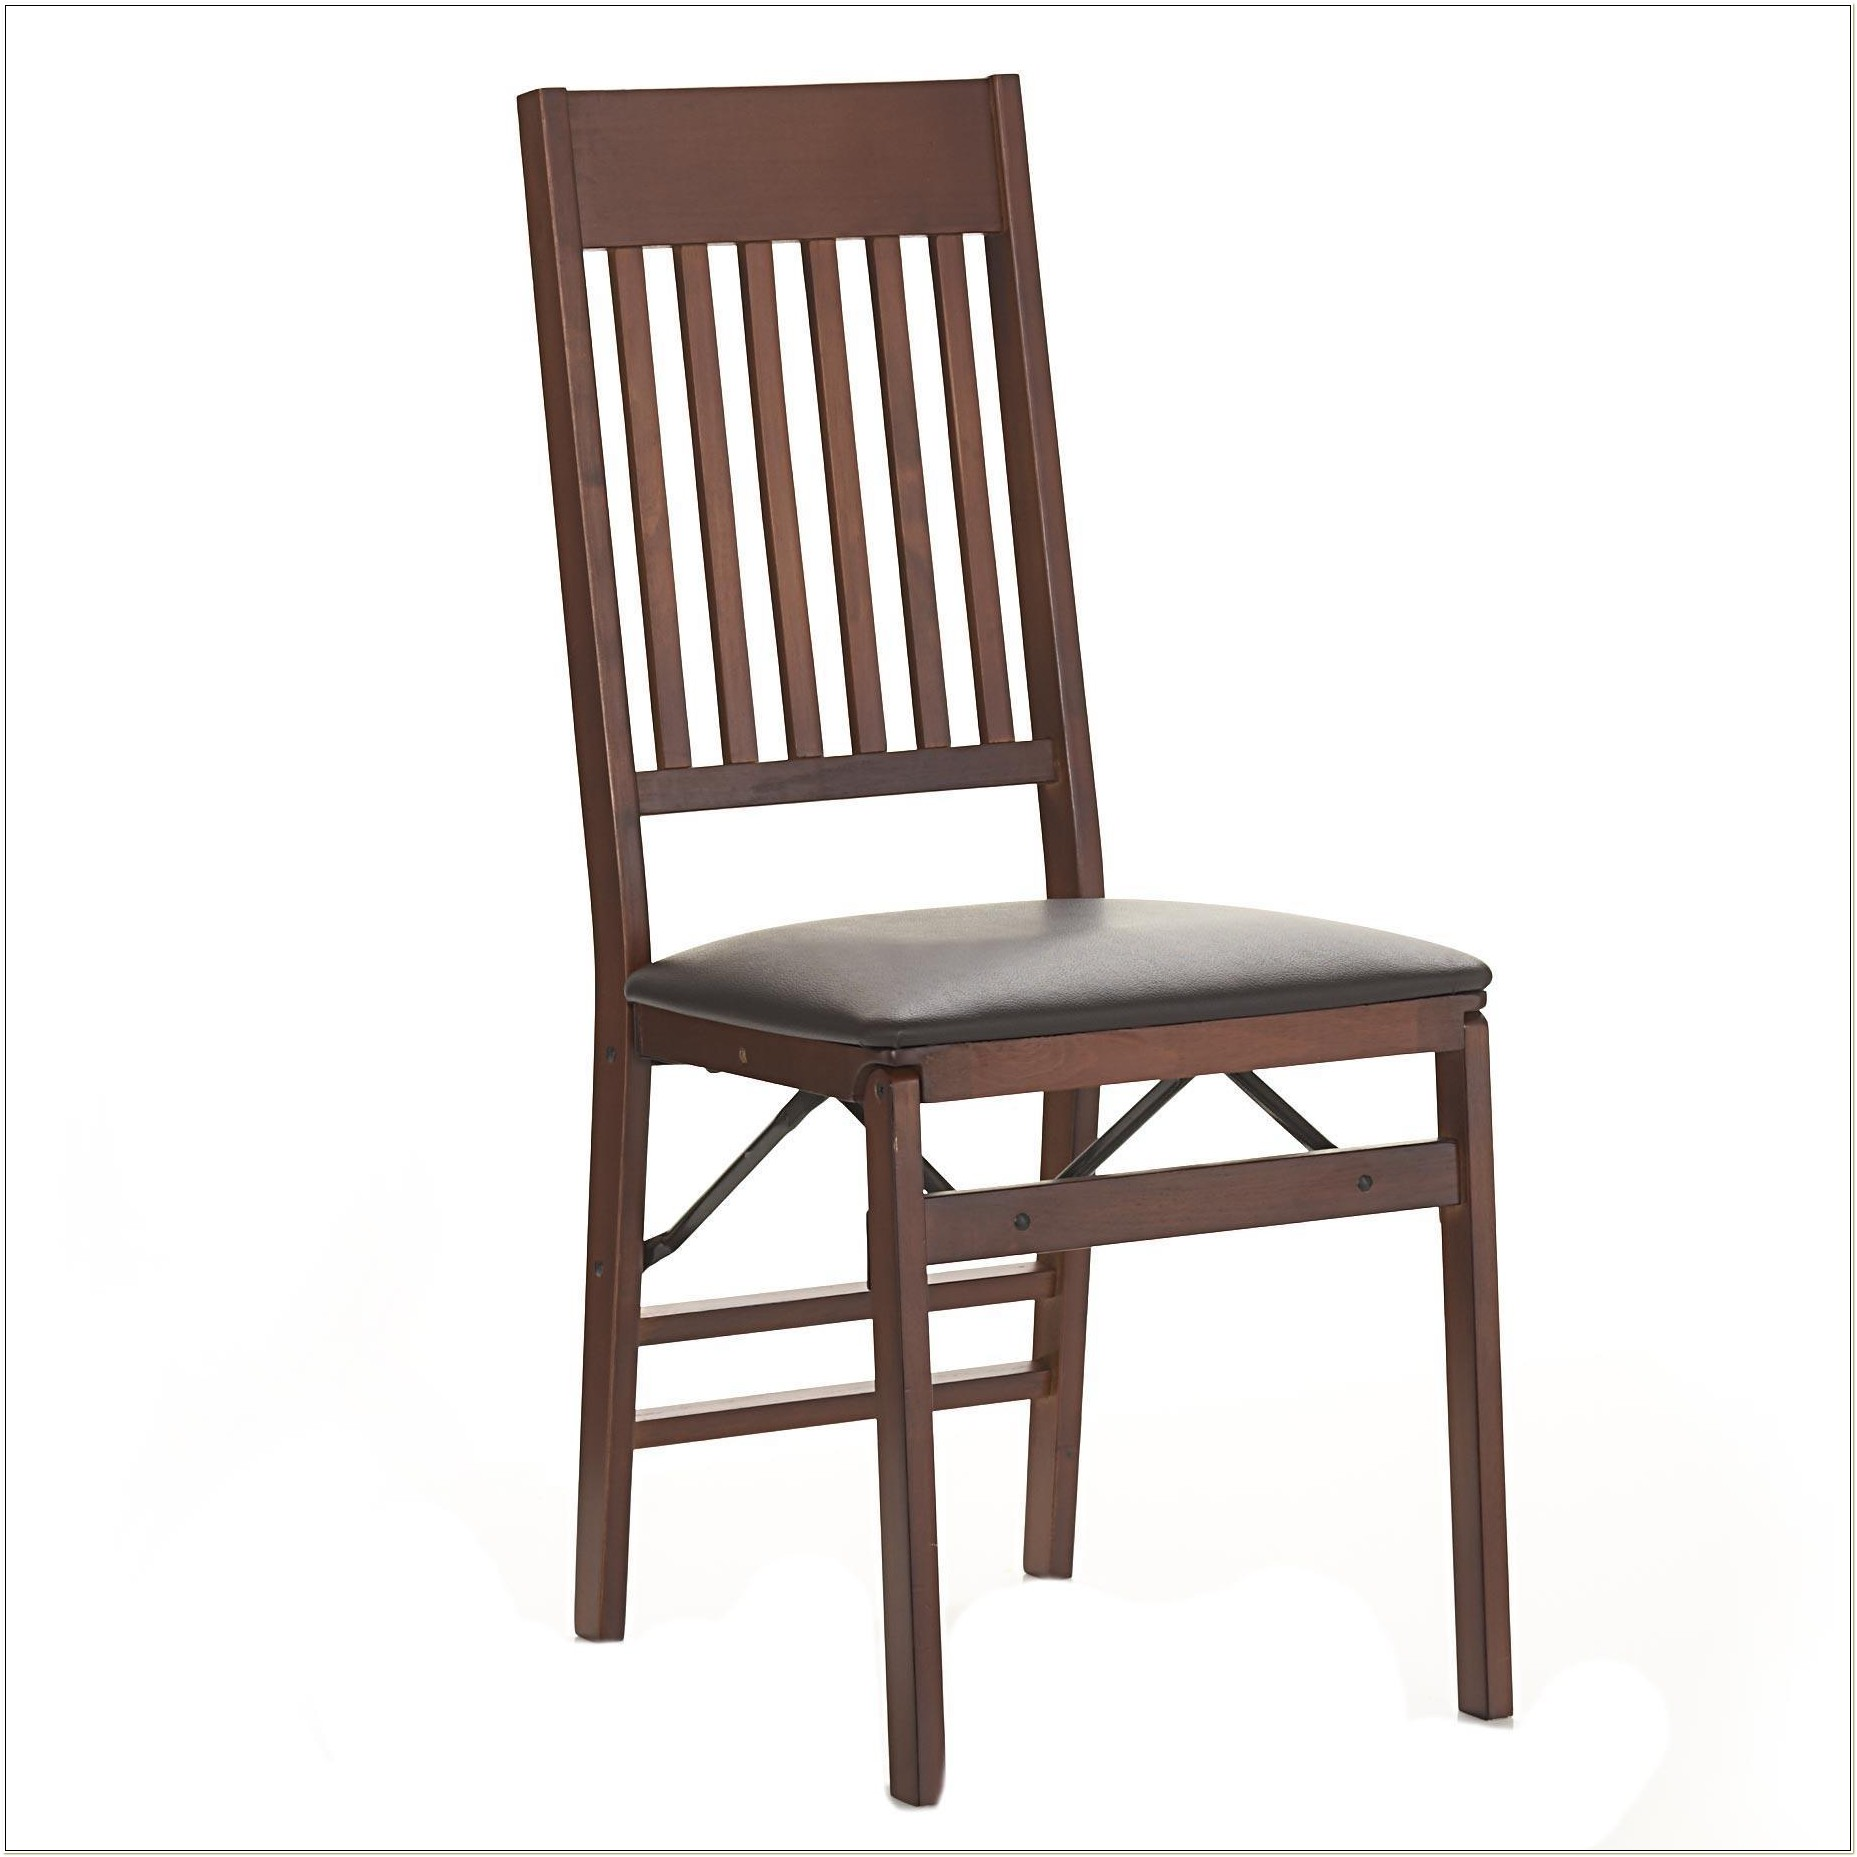 Cosco Wood Folding Chair Mission Style Back